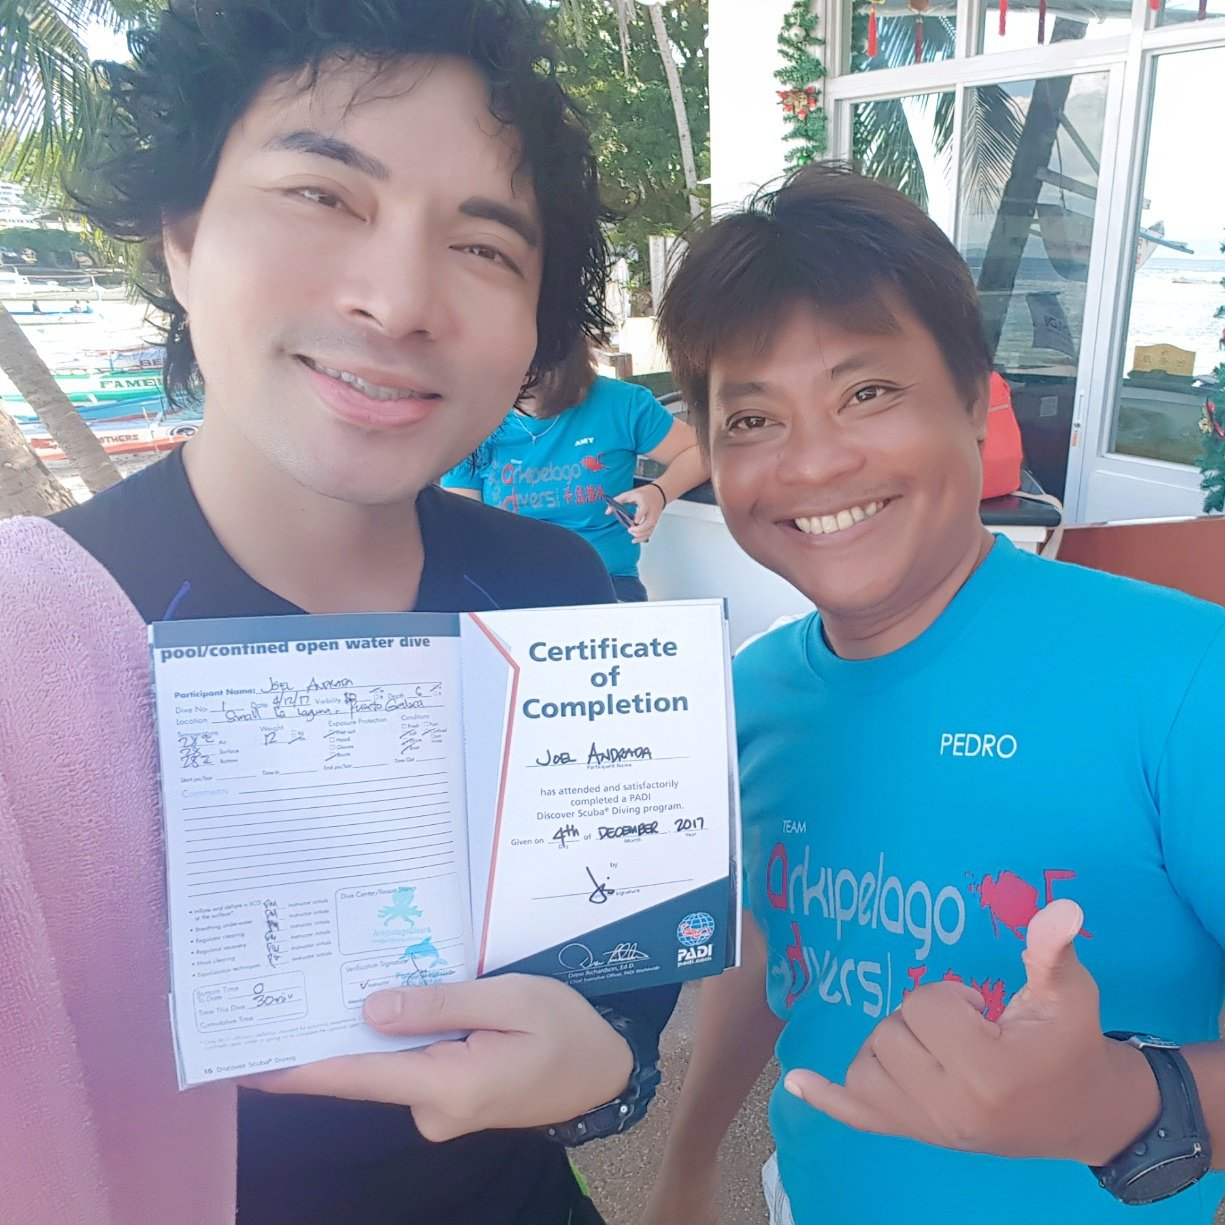 Yehey! I am ready to dive. Thanks, Pedro!